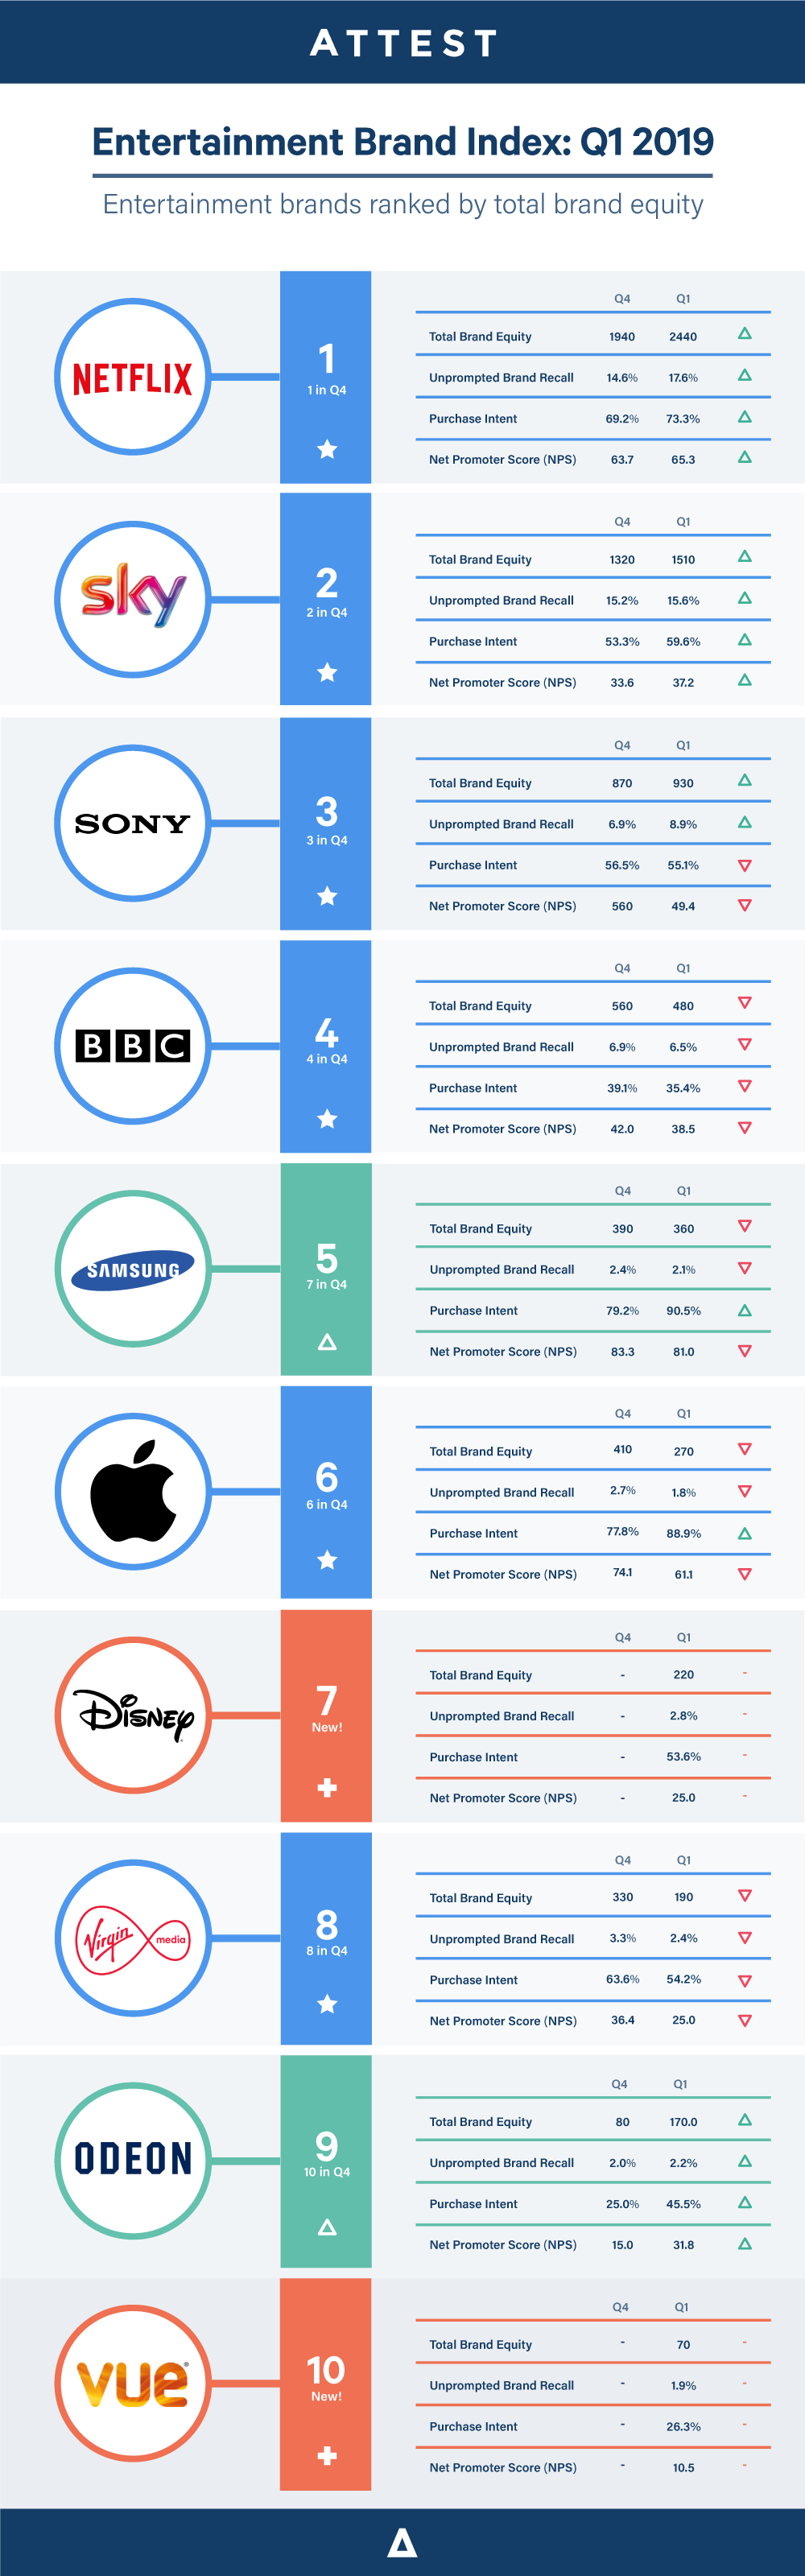 Brand-index-entertainment-2019-Q1